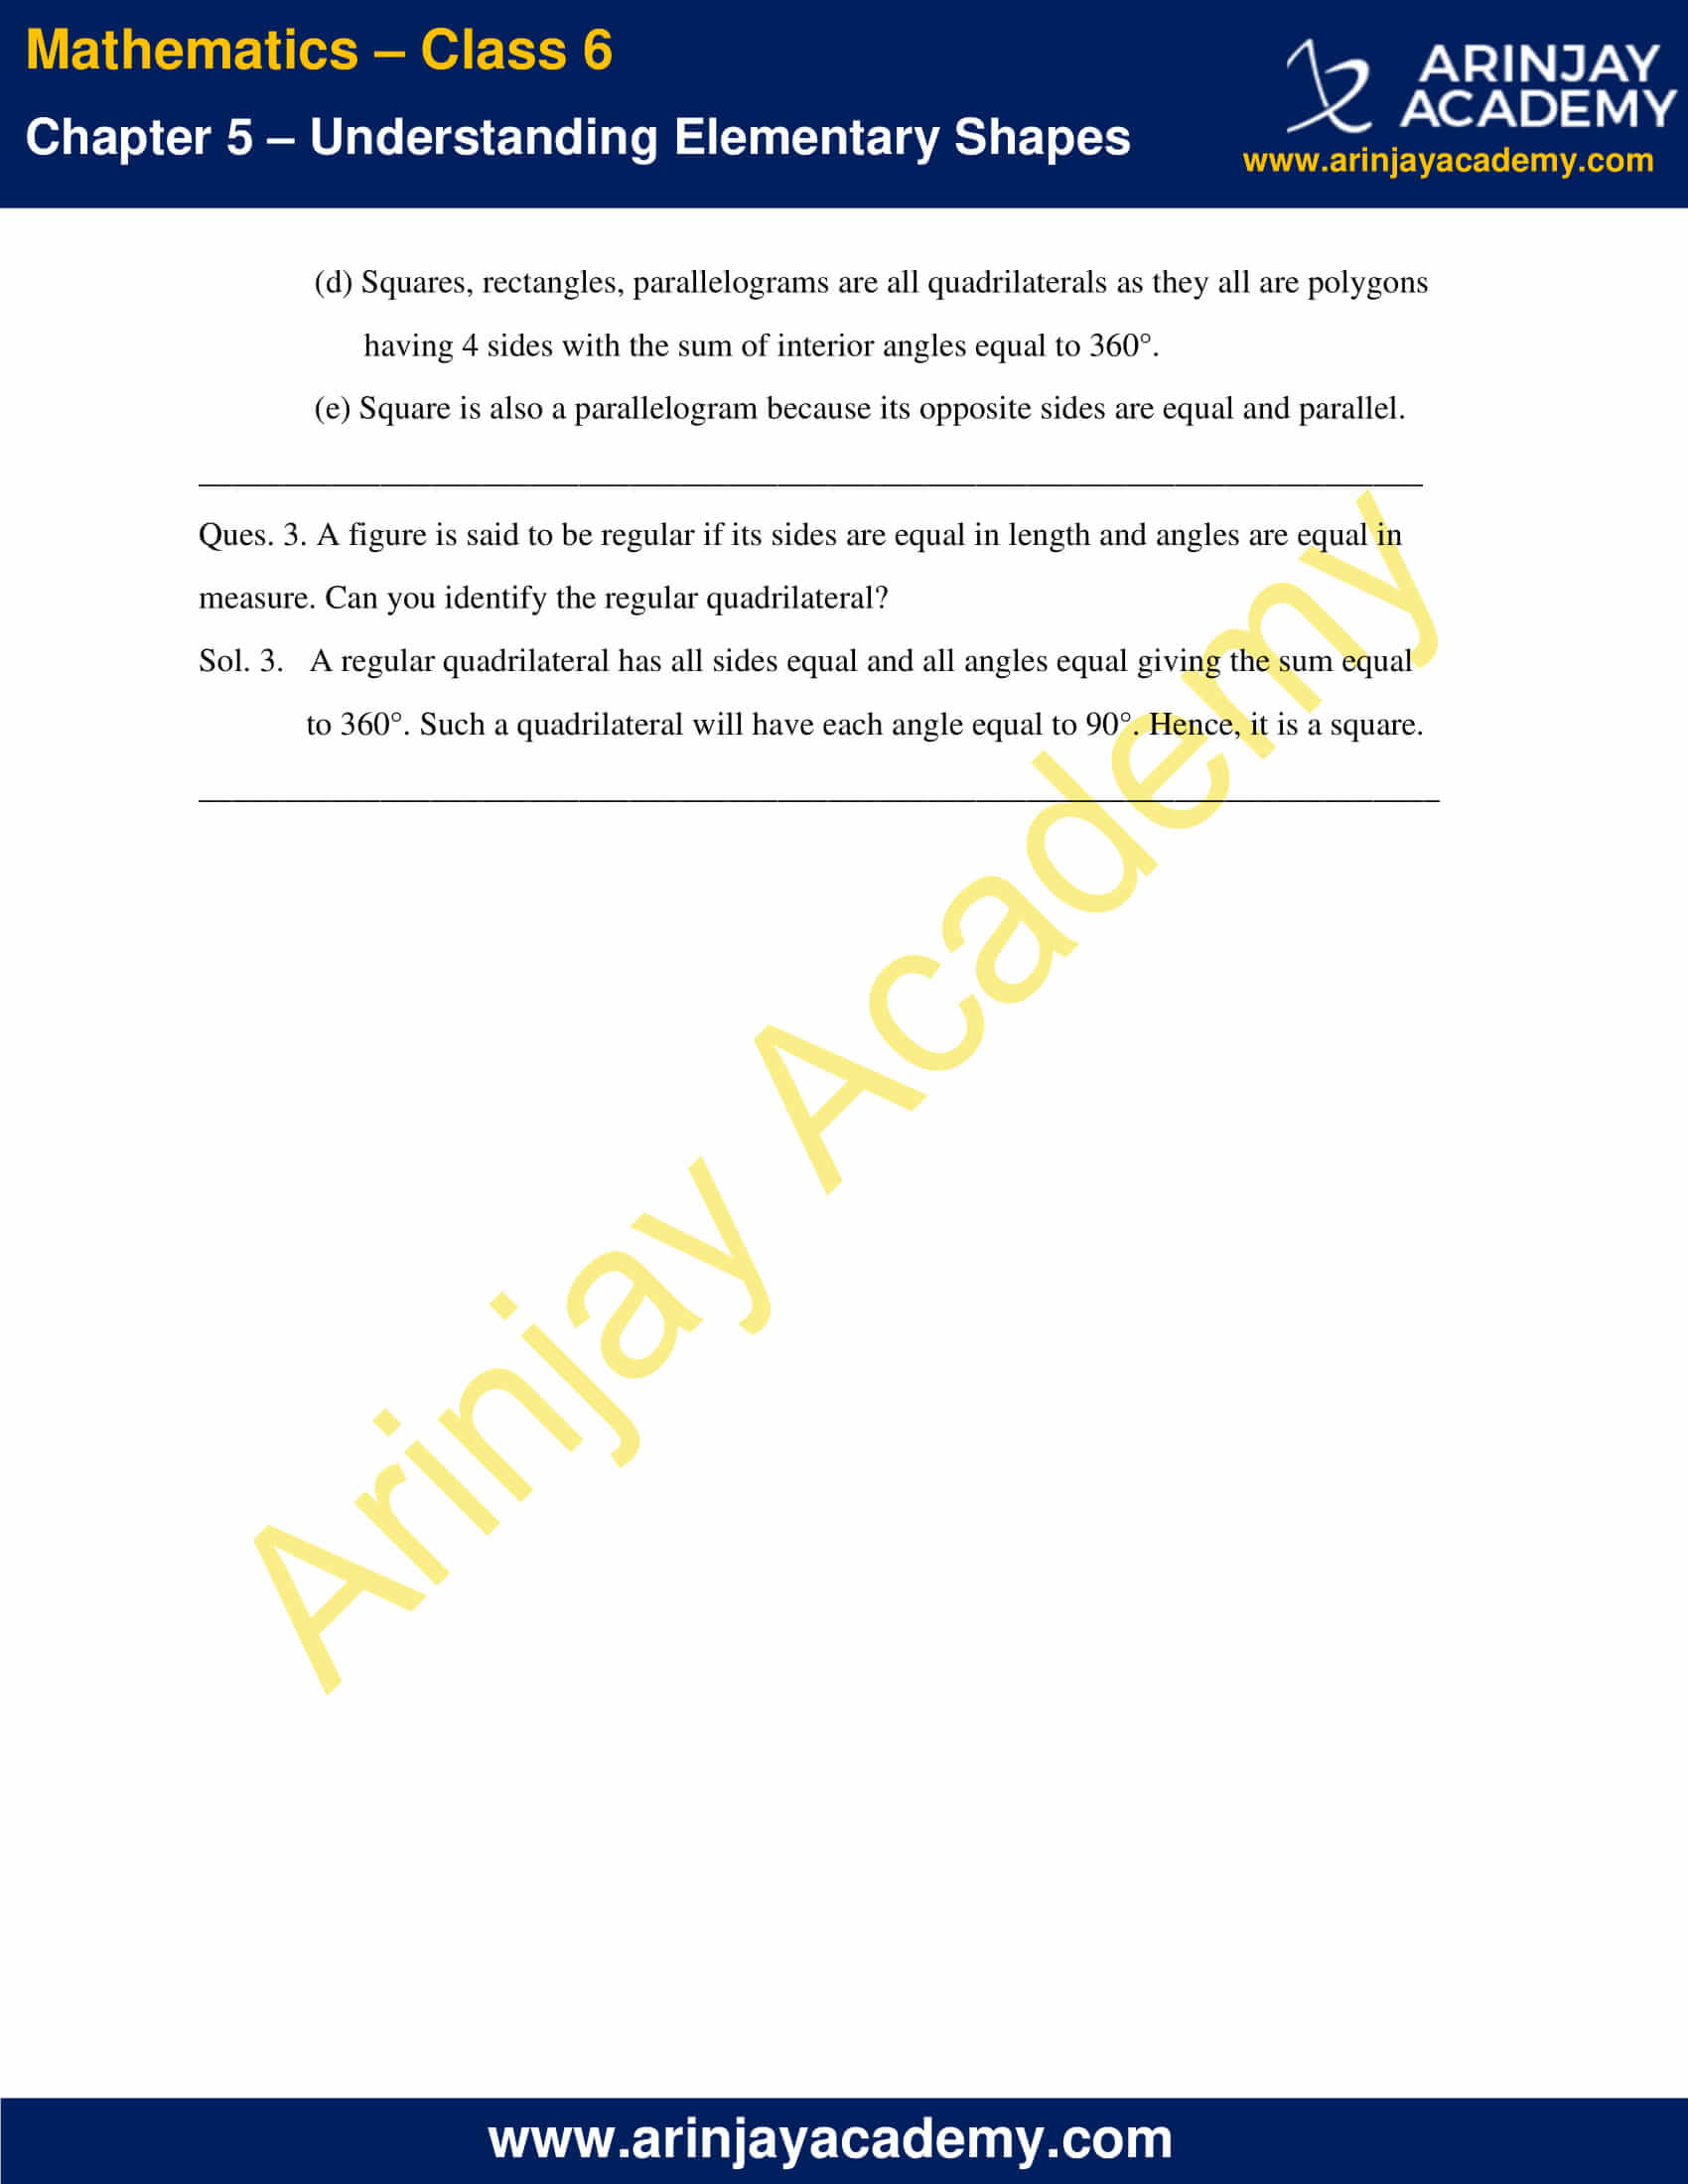 NCERT Solutions for Class 6 Maths Chapter 5 Exercise 5.7 image 2